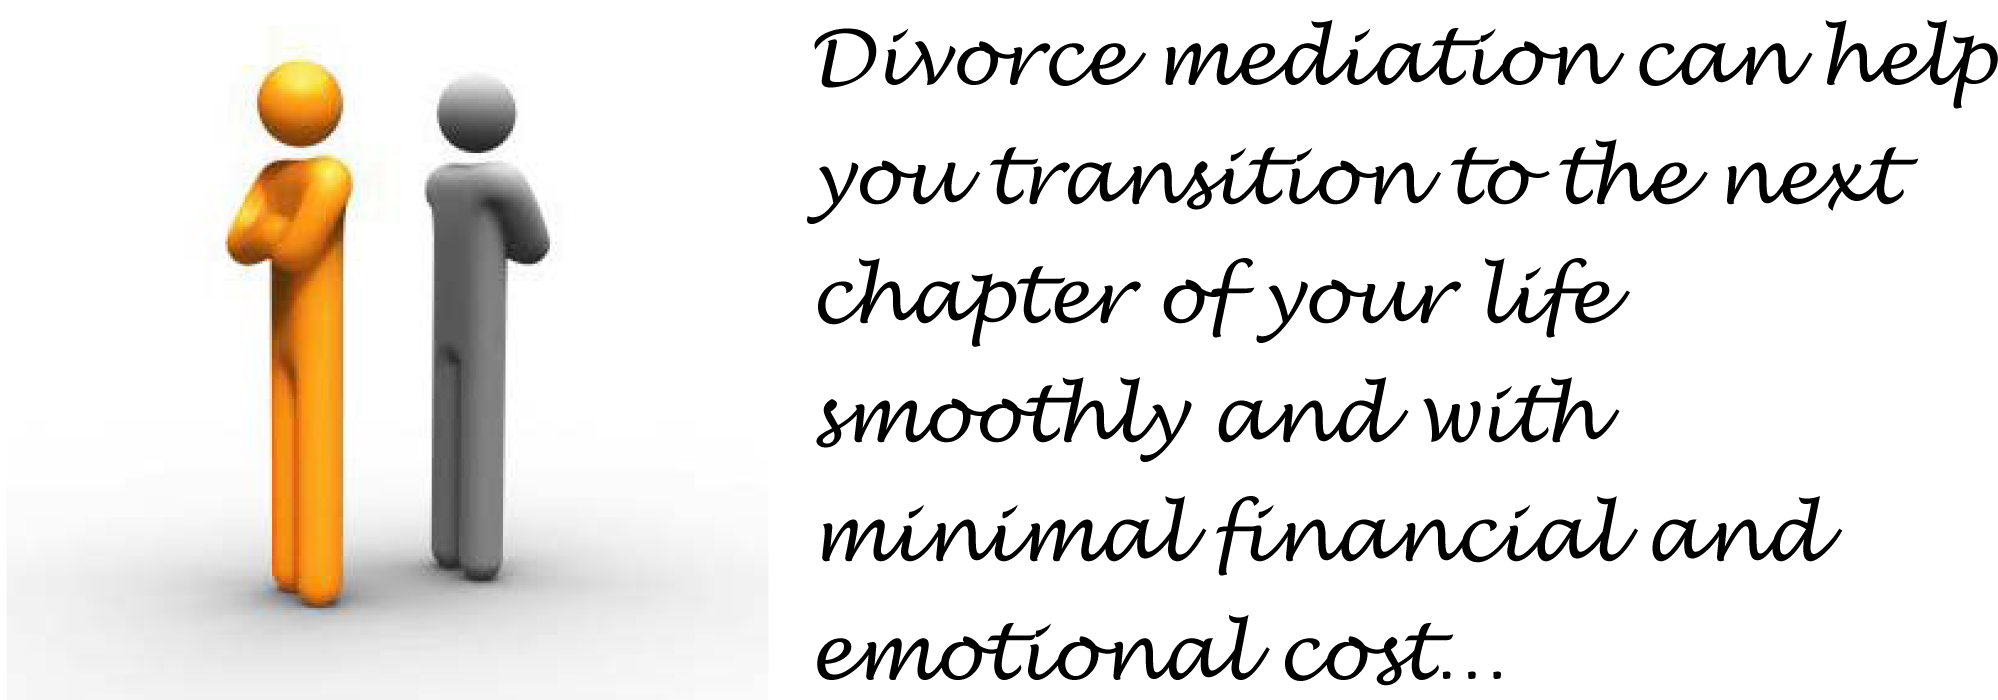 divorce mediation services ct